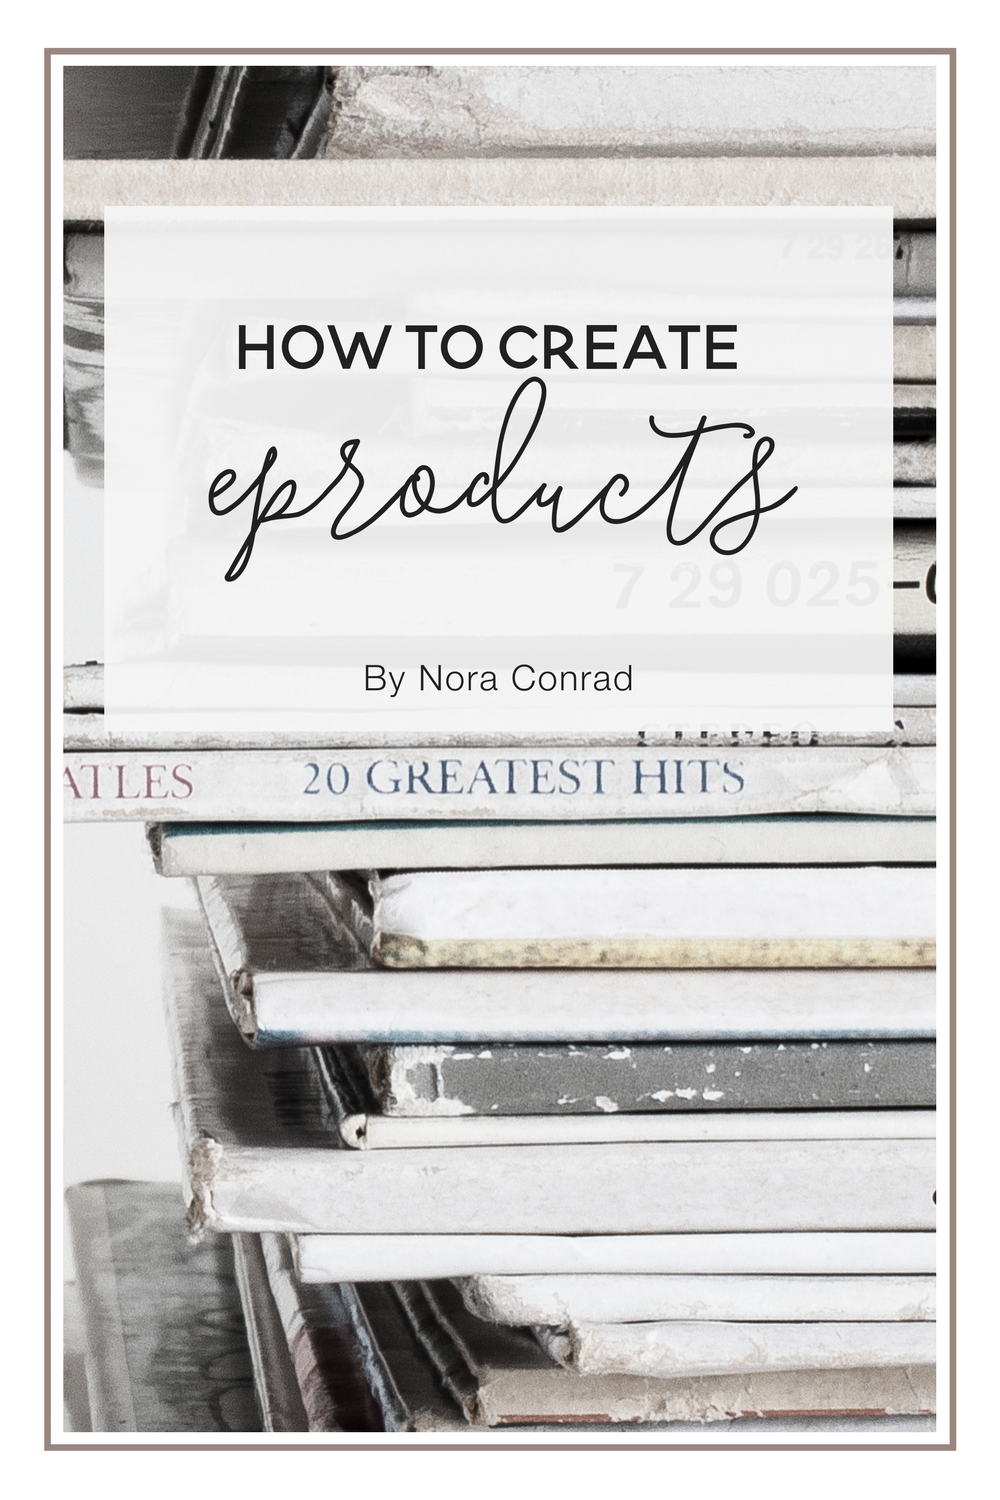 If you want to create an ebook, ecourse, or sell services online, this post is for you. An in-depth guide and workbook to get you started selling and creating online.